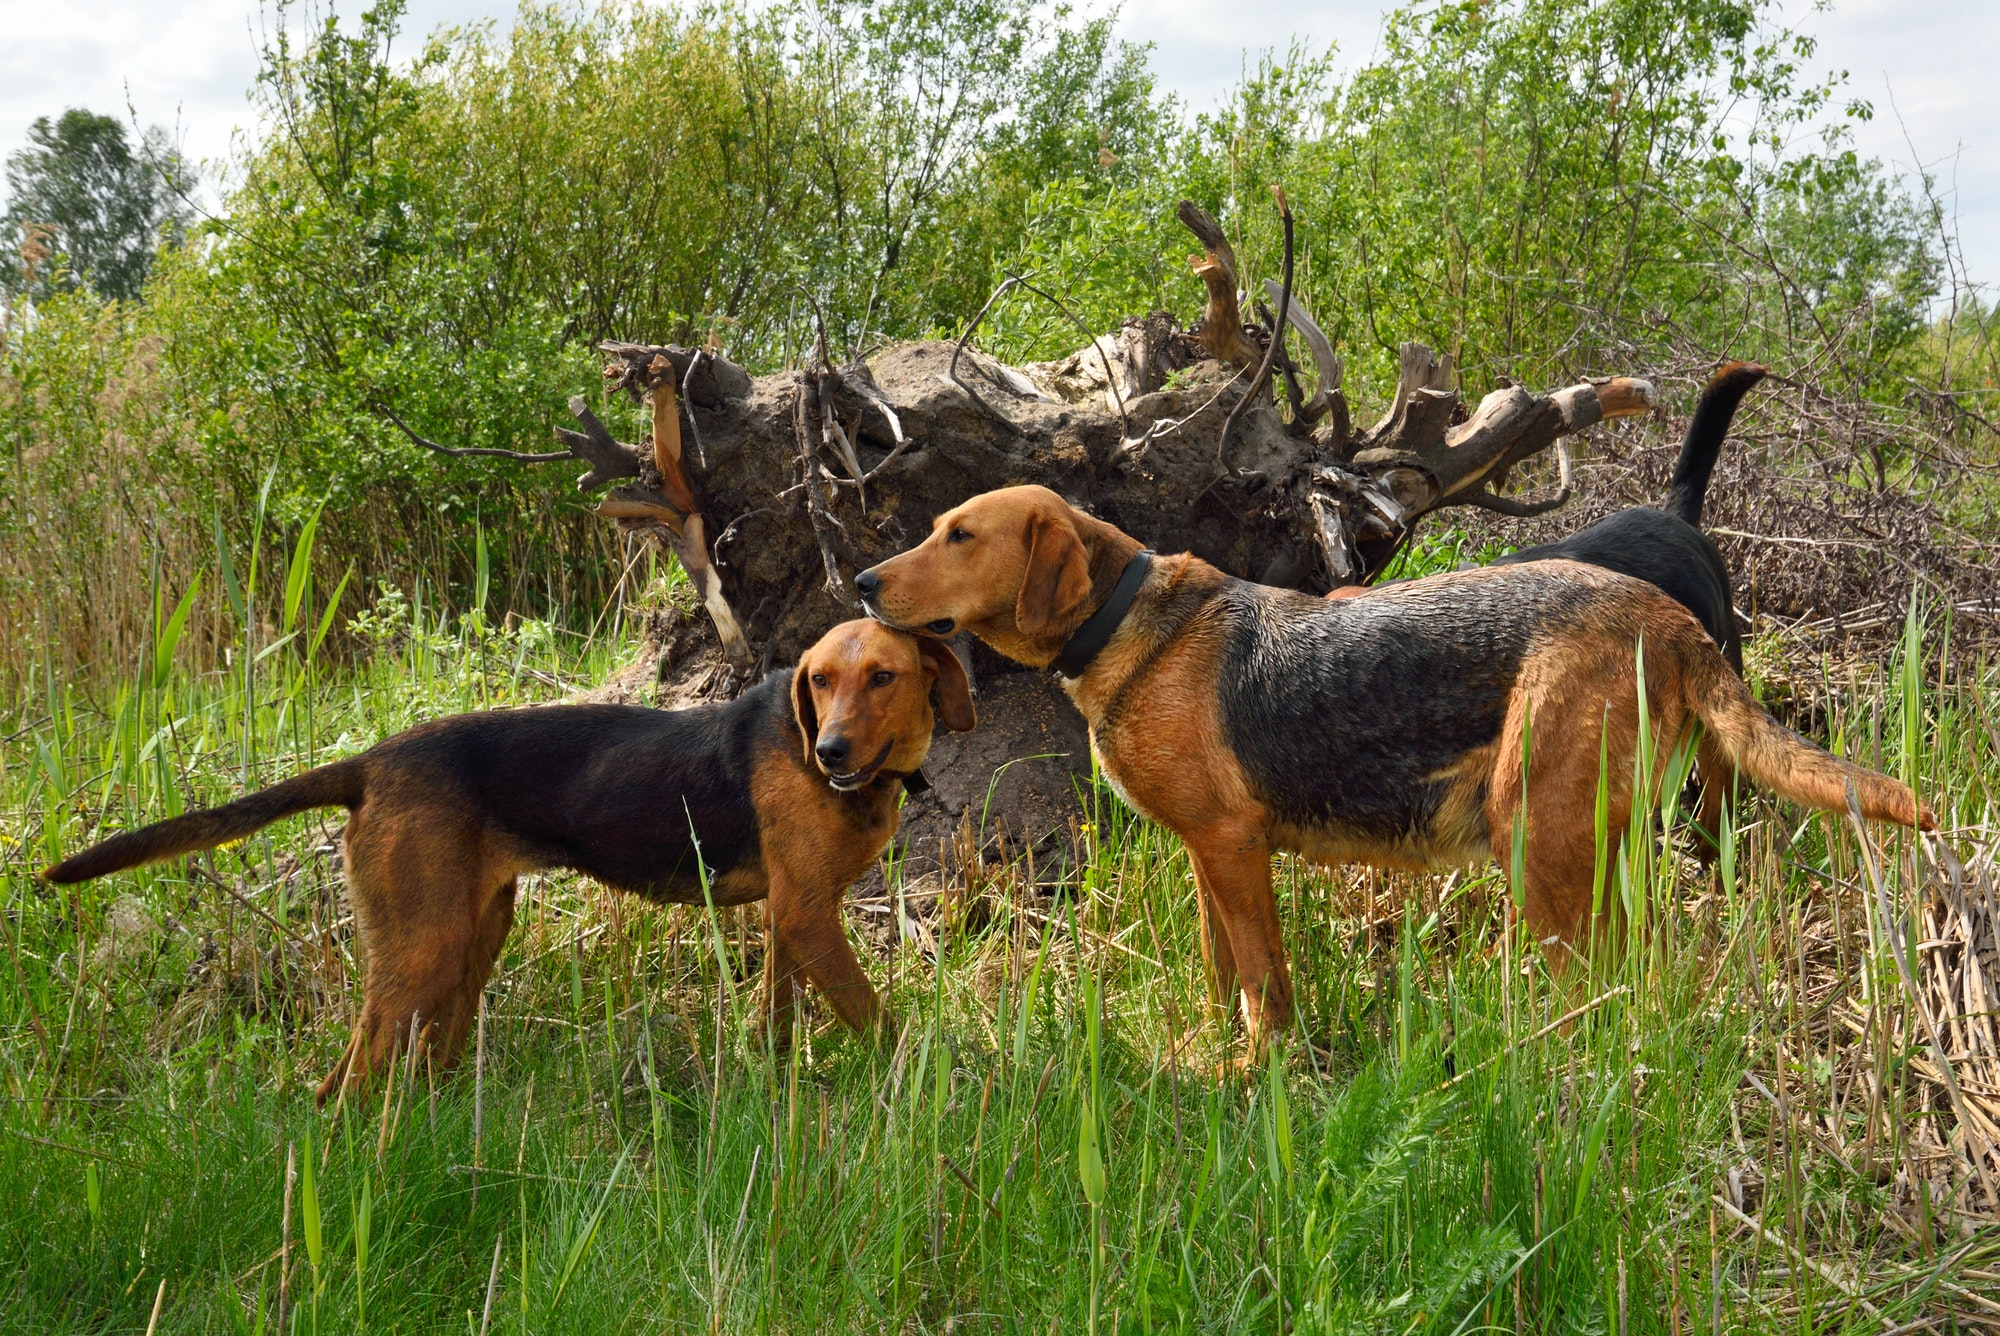 Hunting Dogs Vs Show Dogs – What's the Difference?